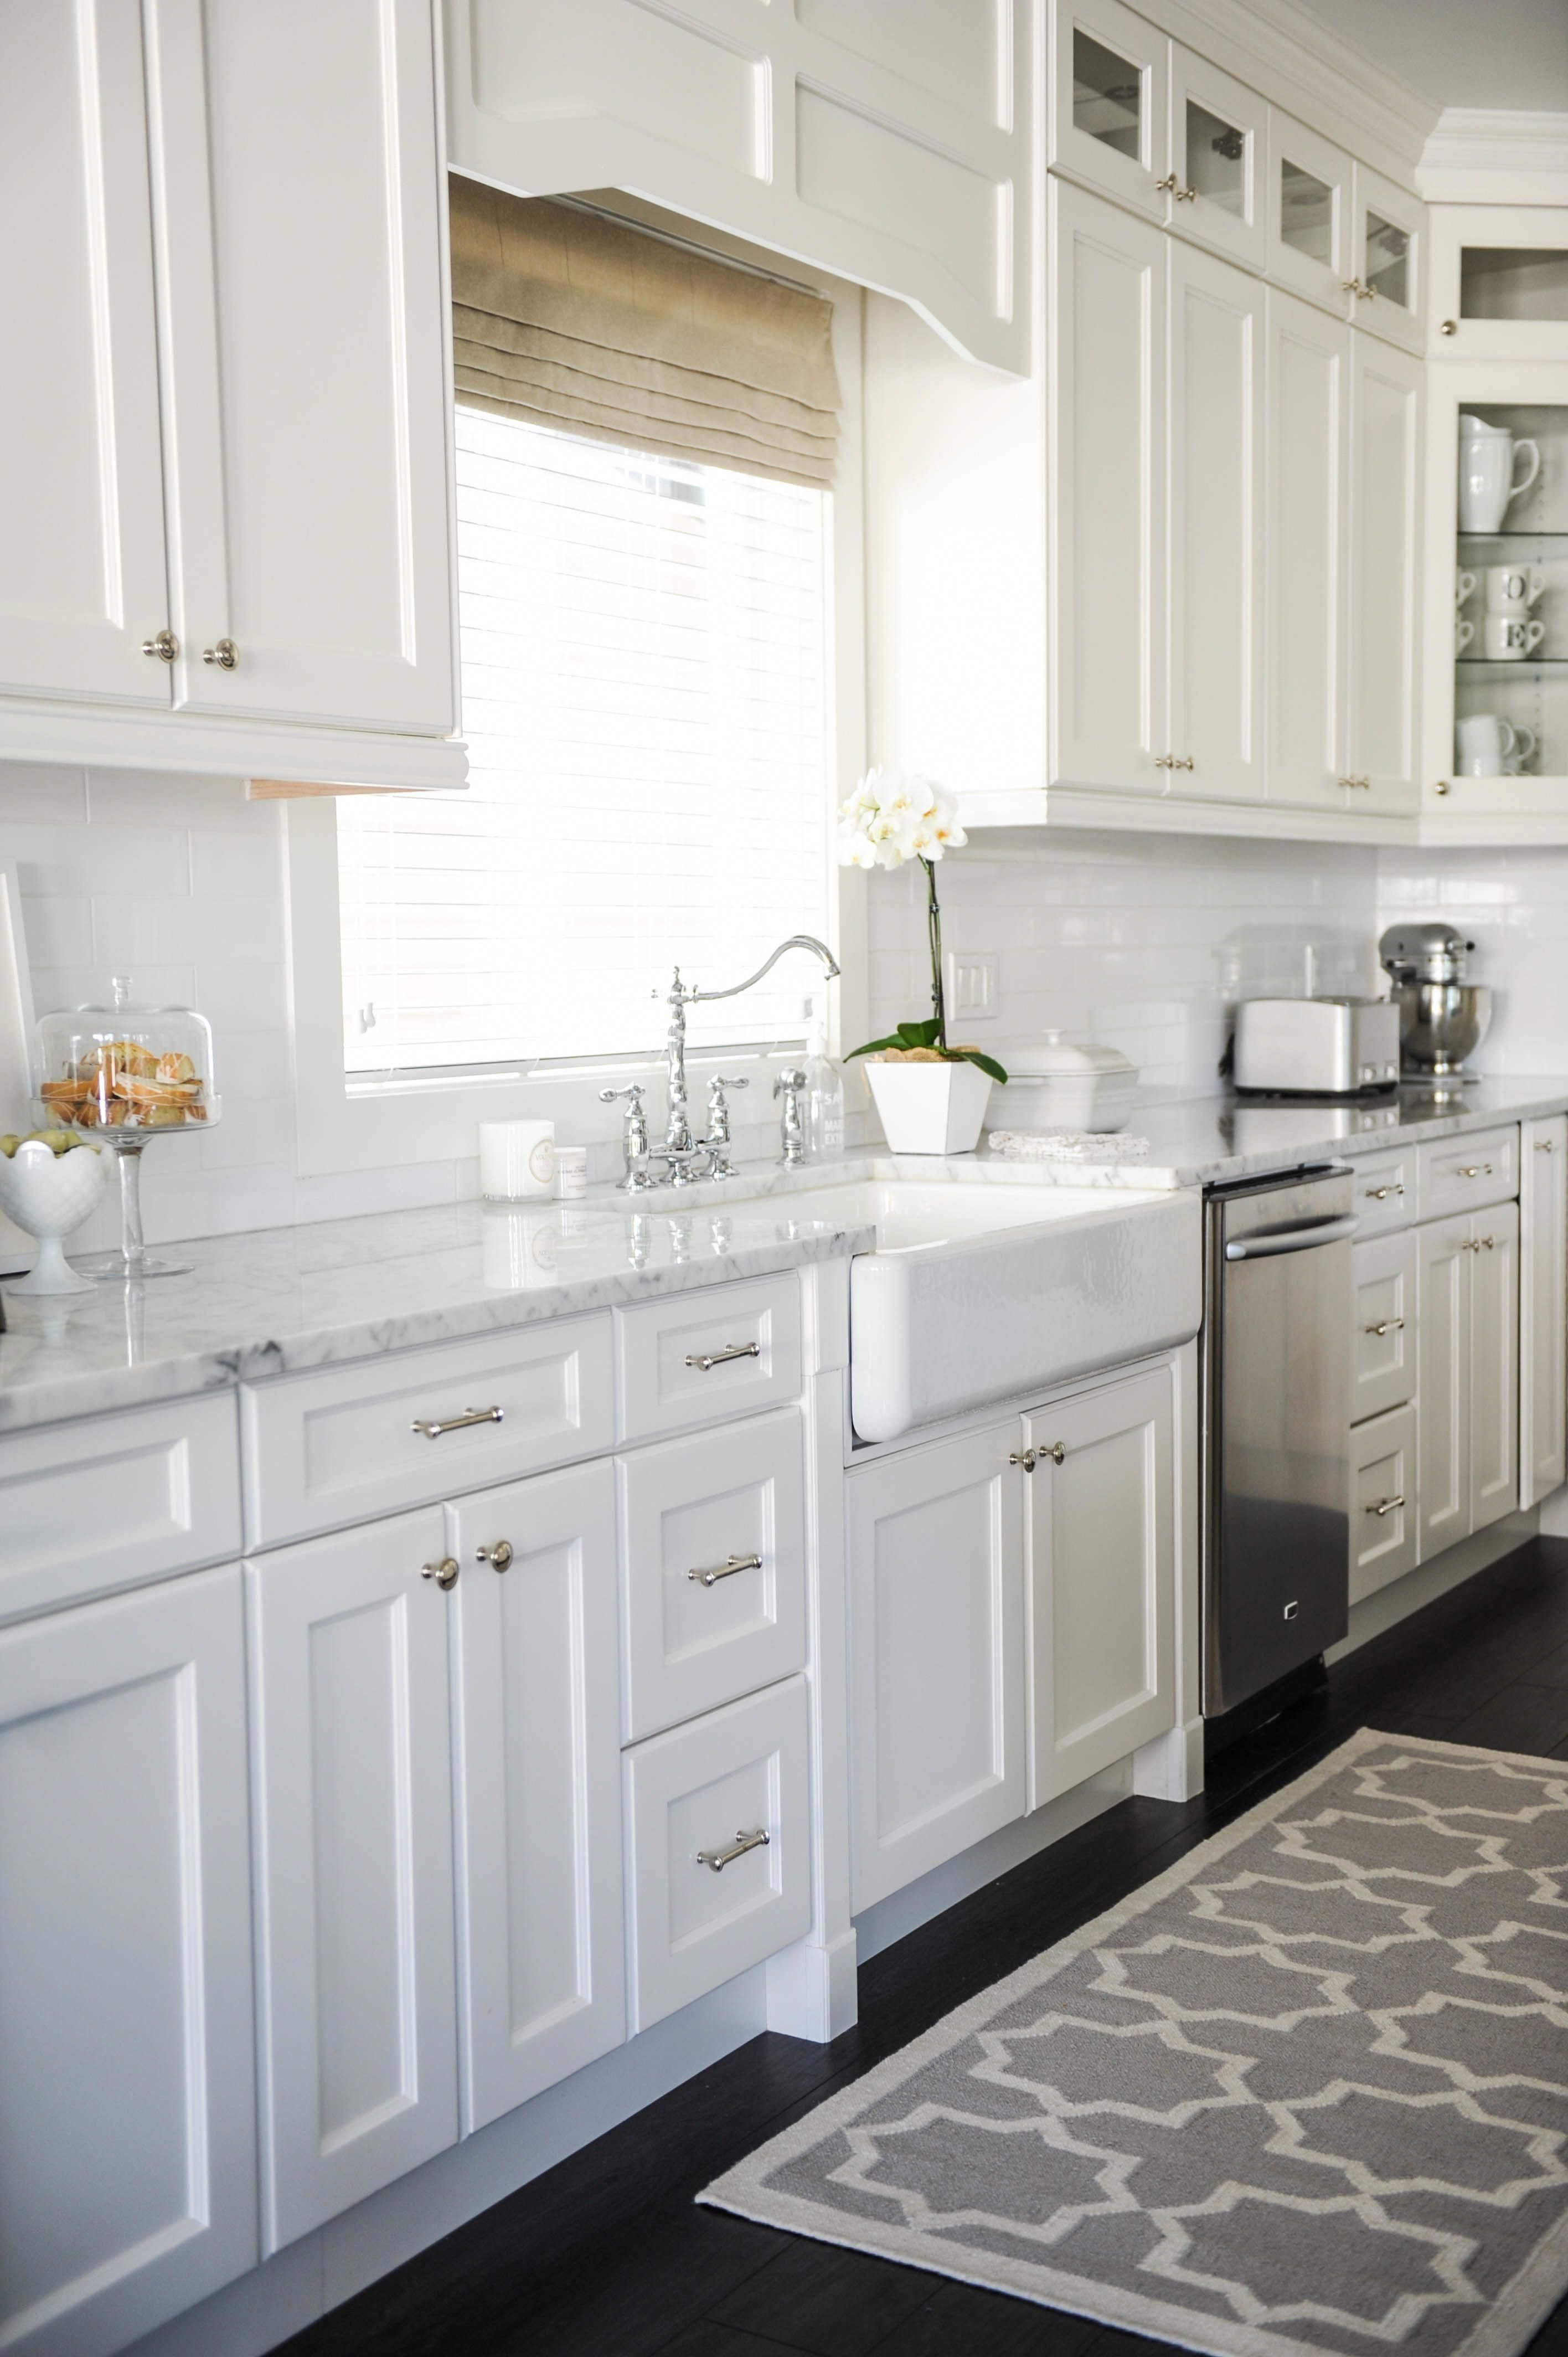 Selection Of Paints And Tips To Rejuvenate Kitchen Furniture With Images White Kitchen Design Kitchen Cabinets Decor Kitchen Design Decor